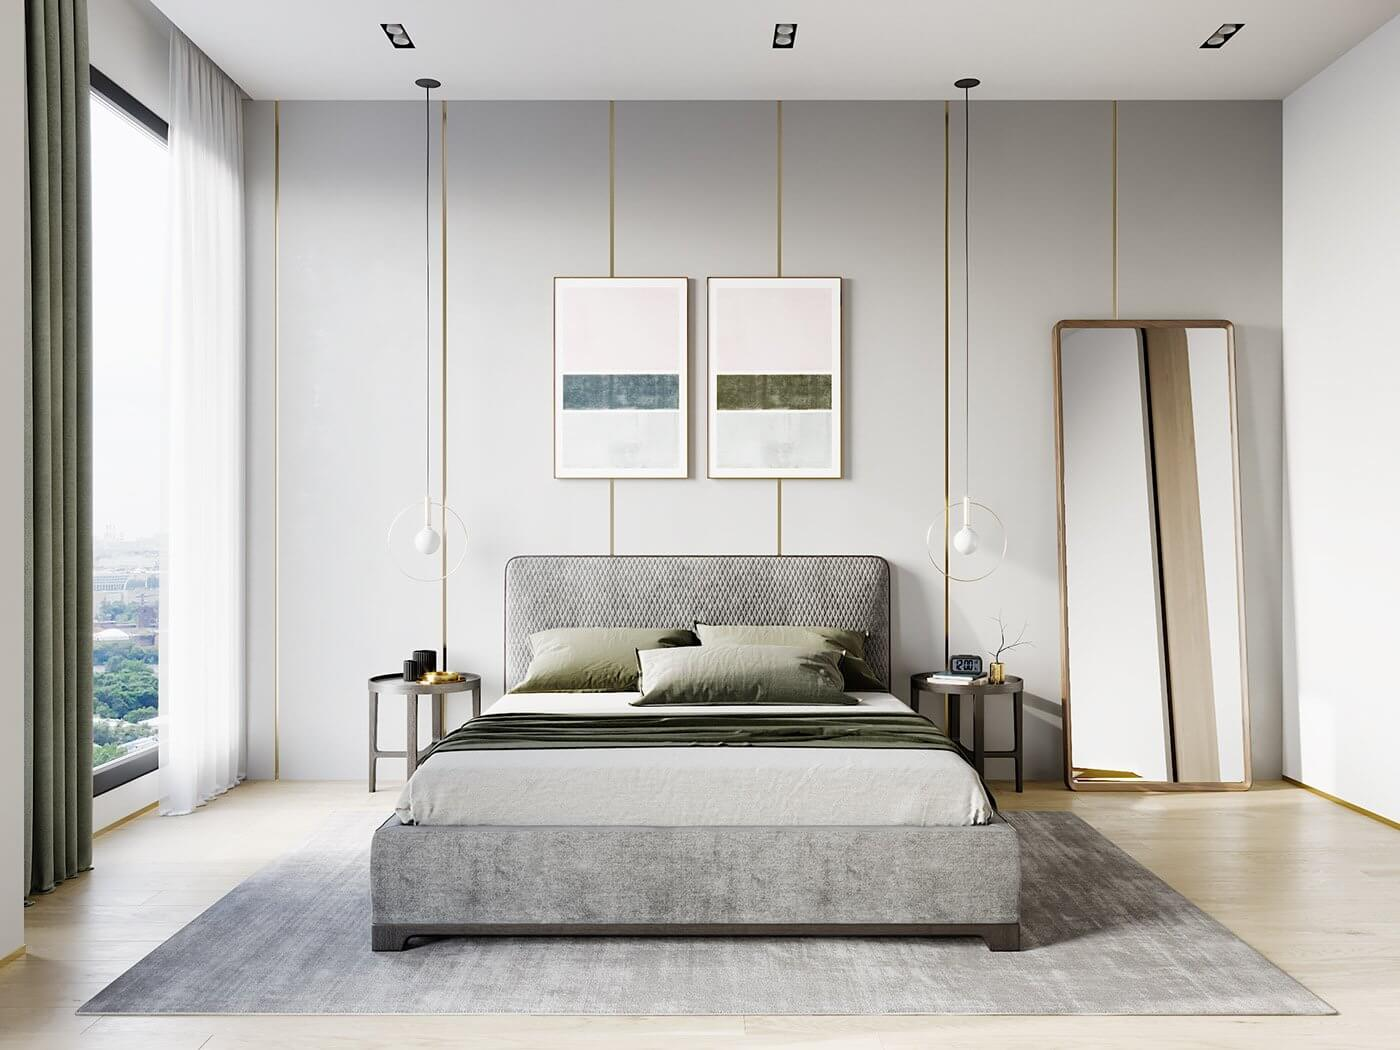 Green gold Apartment bedroom design - cgi visualization